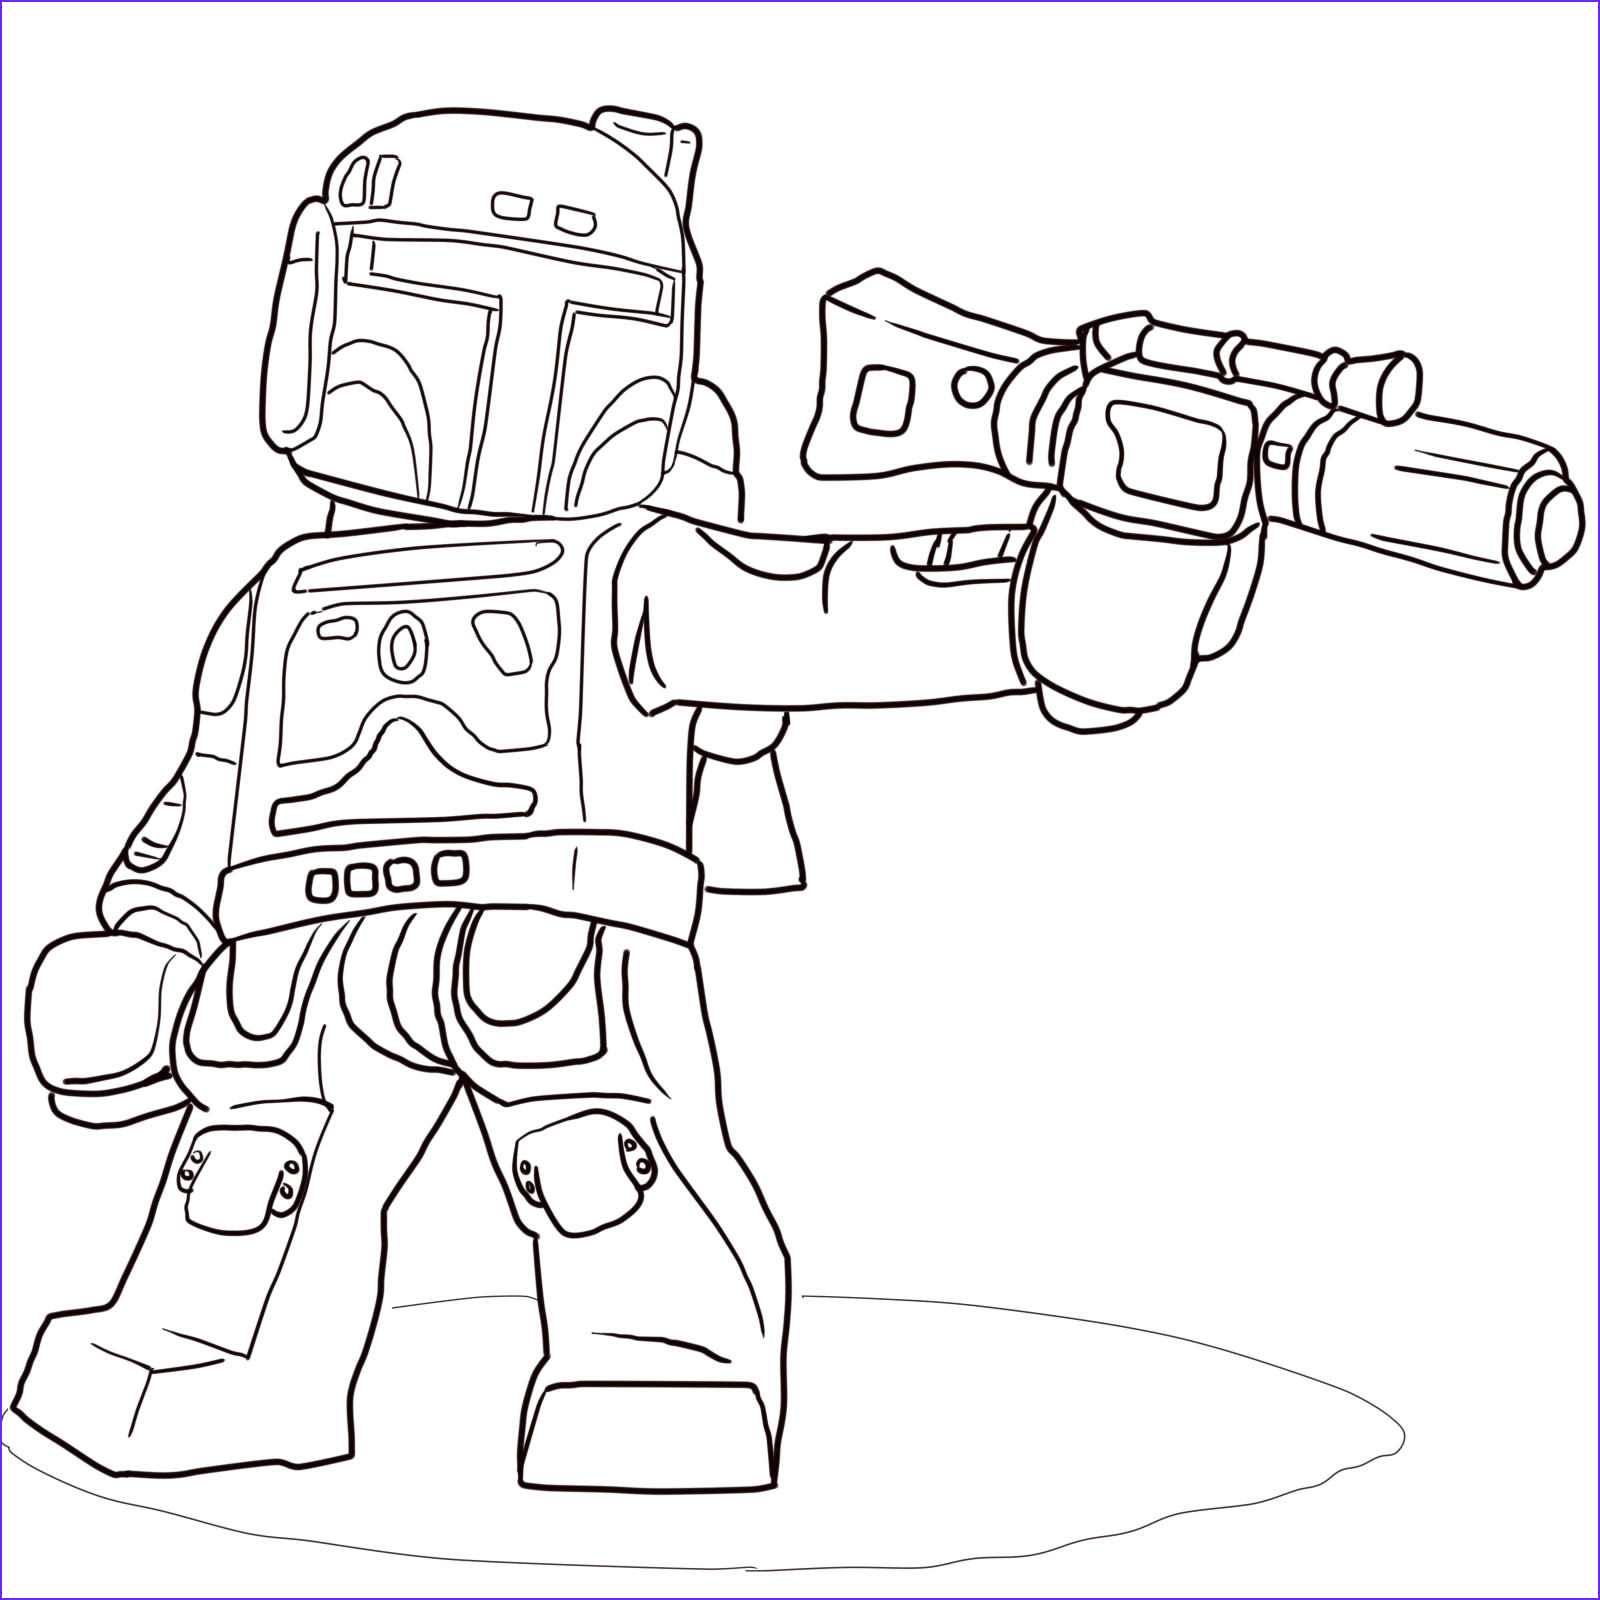 Star Wars Characters Coloring Pages Beautiful Photos Lego Coloring Pages with Characters Chima Ninjago City